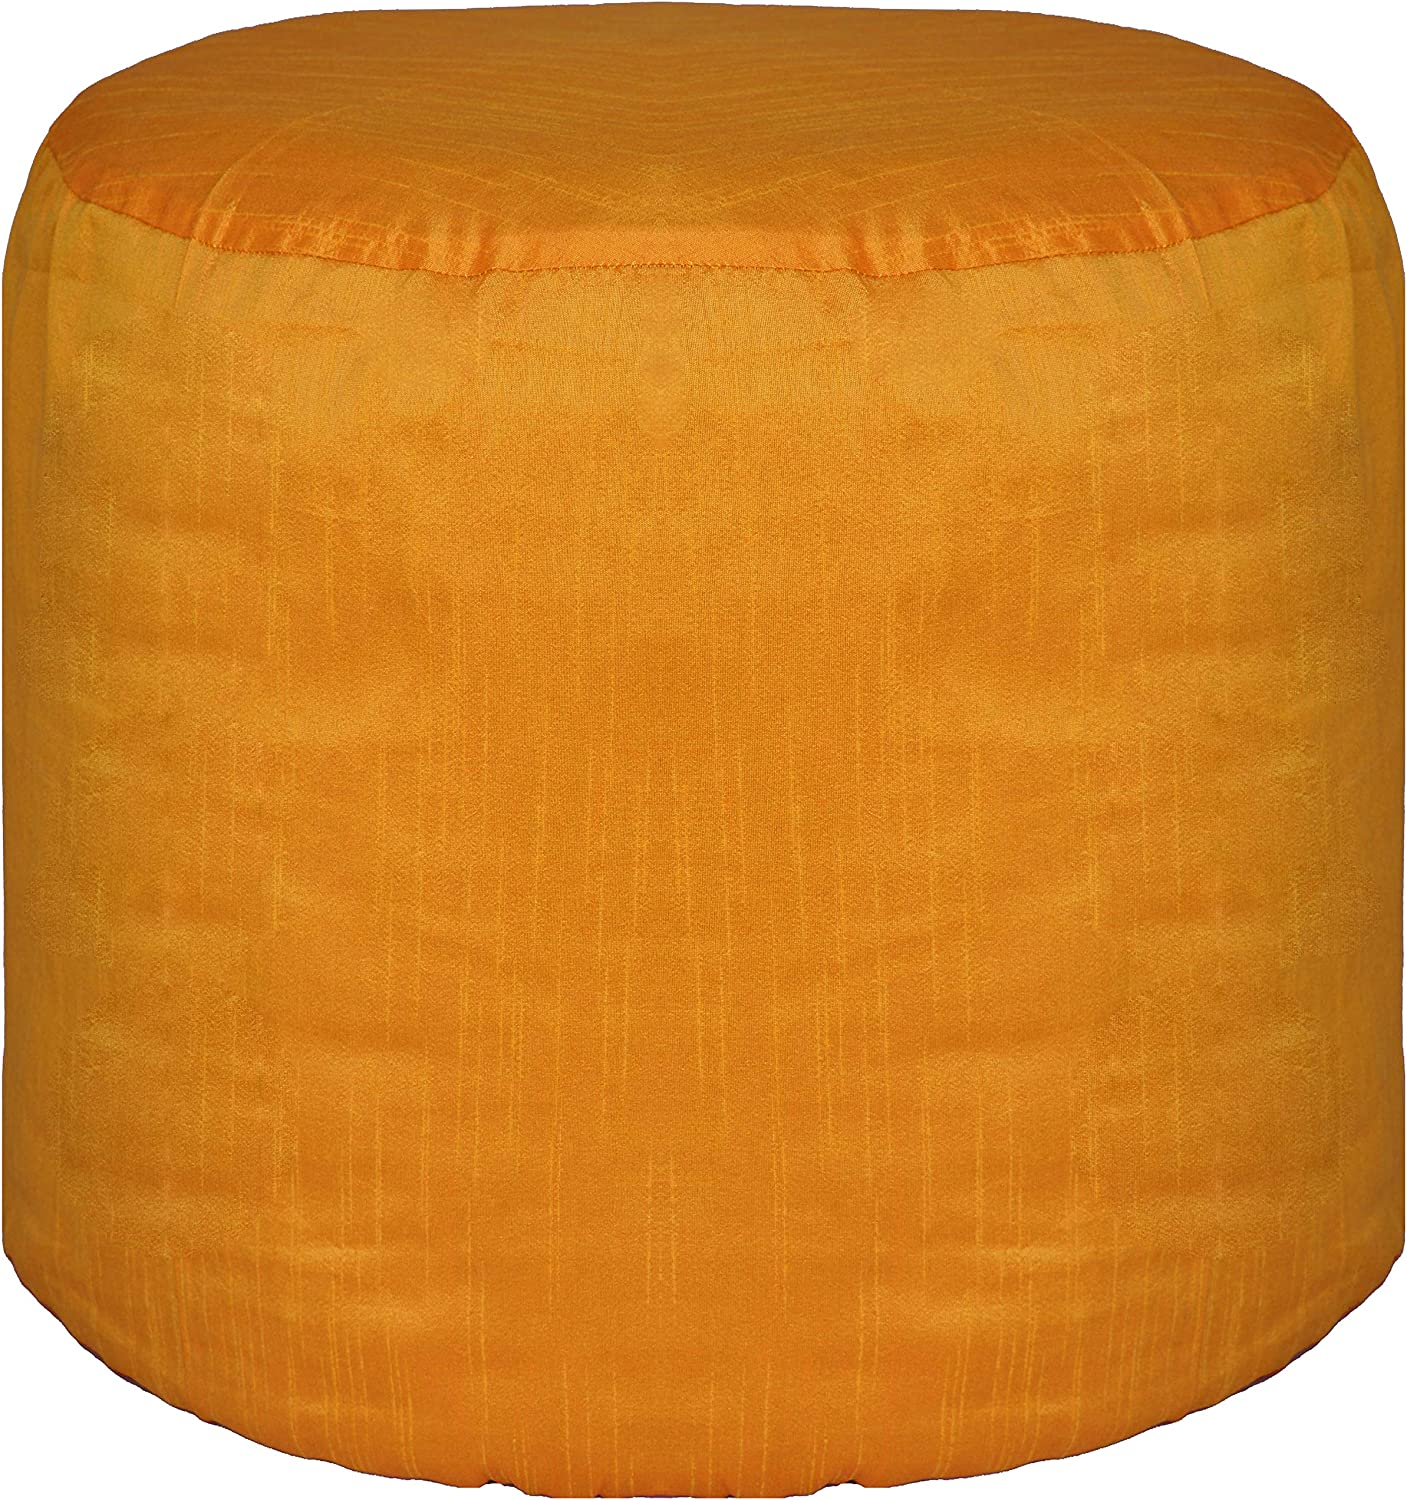 Selling and selling Gifts Pouf Cover Round Ottoman Footstool 22